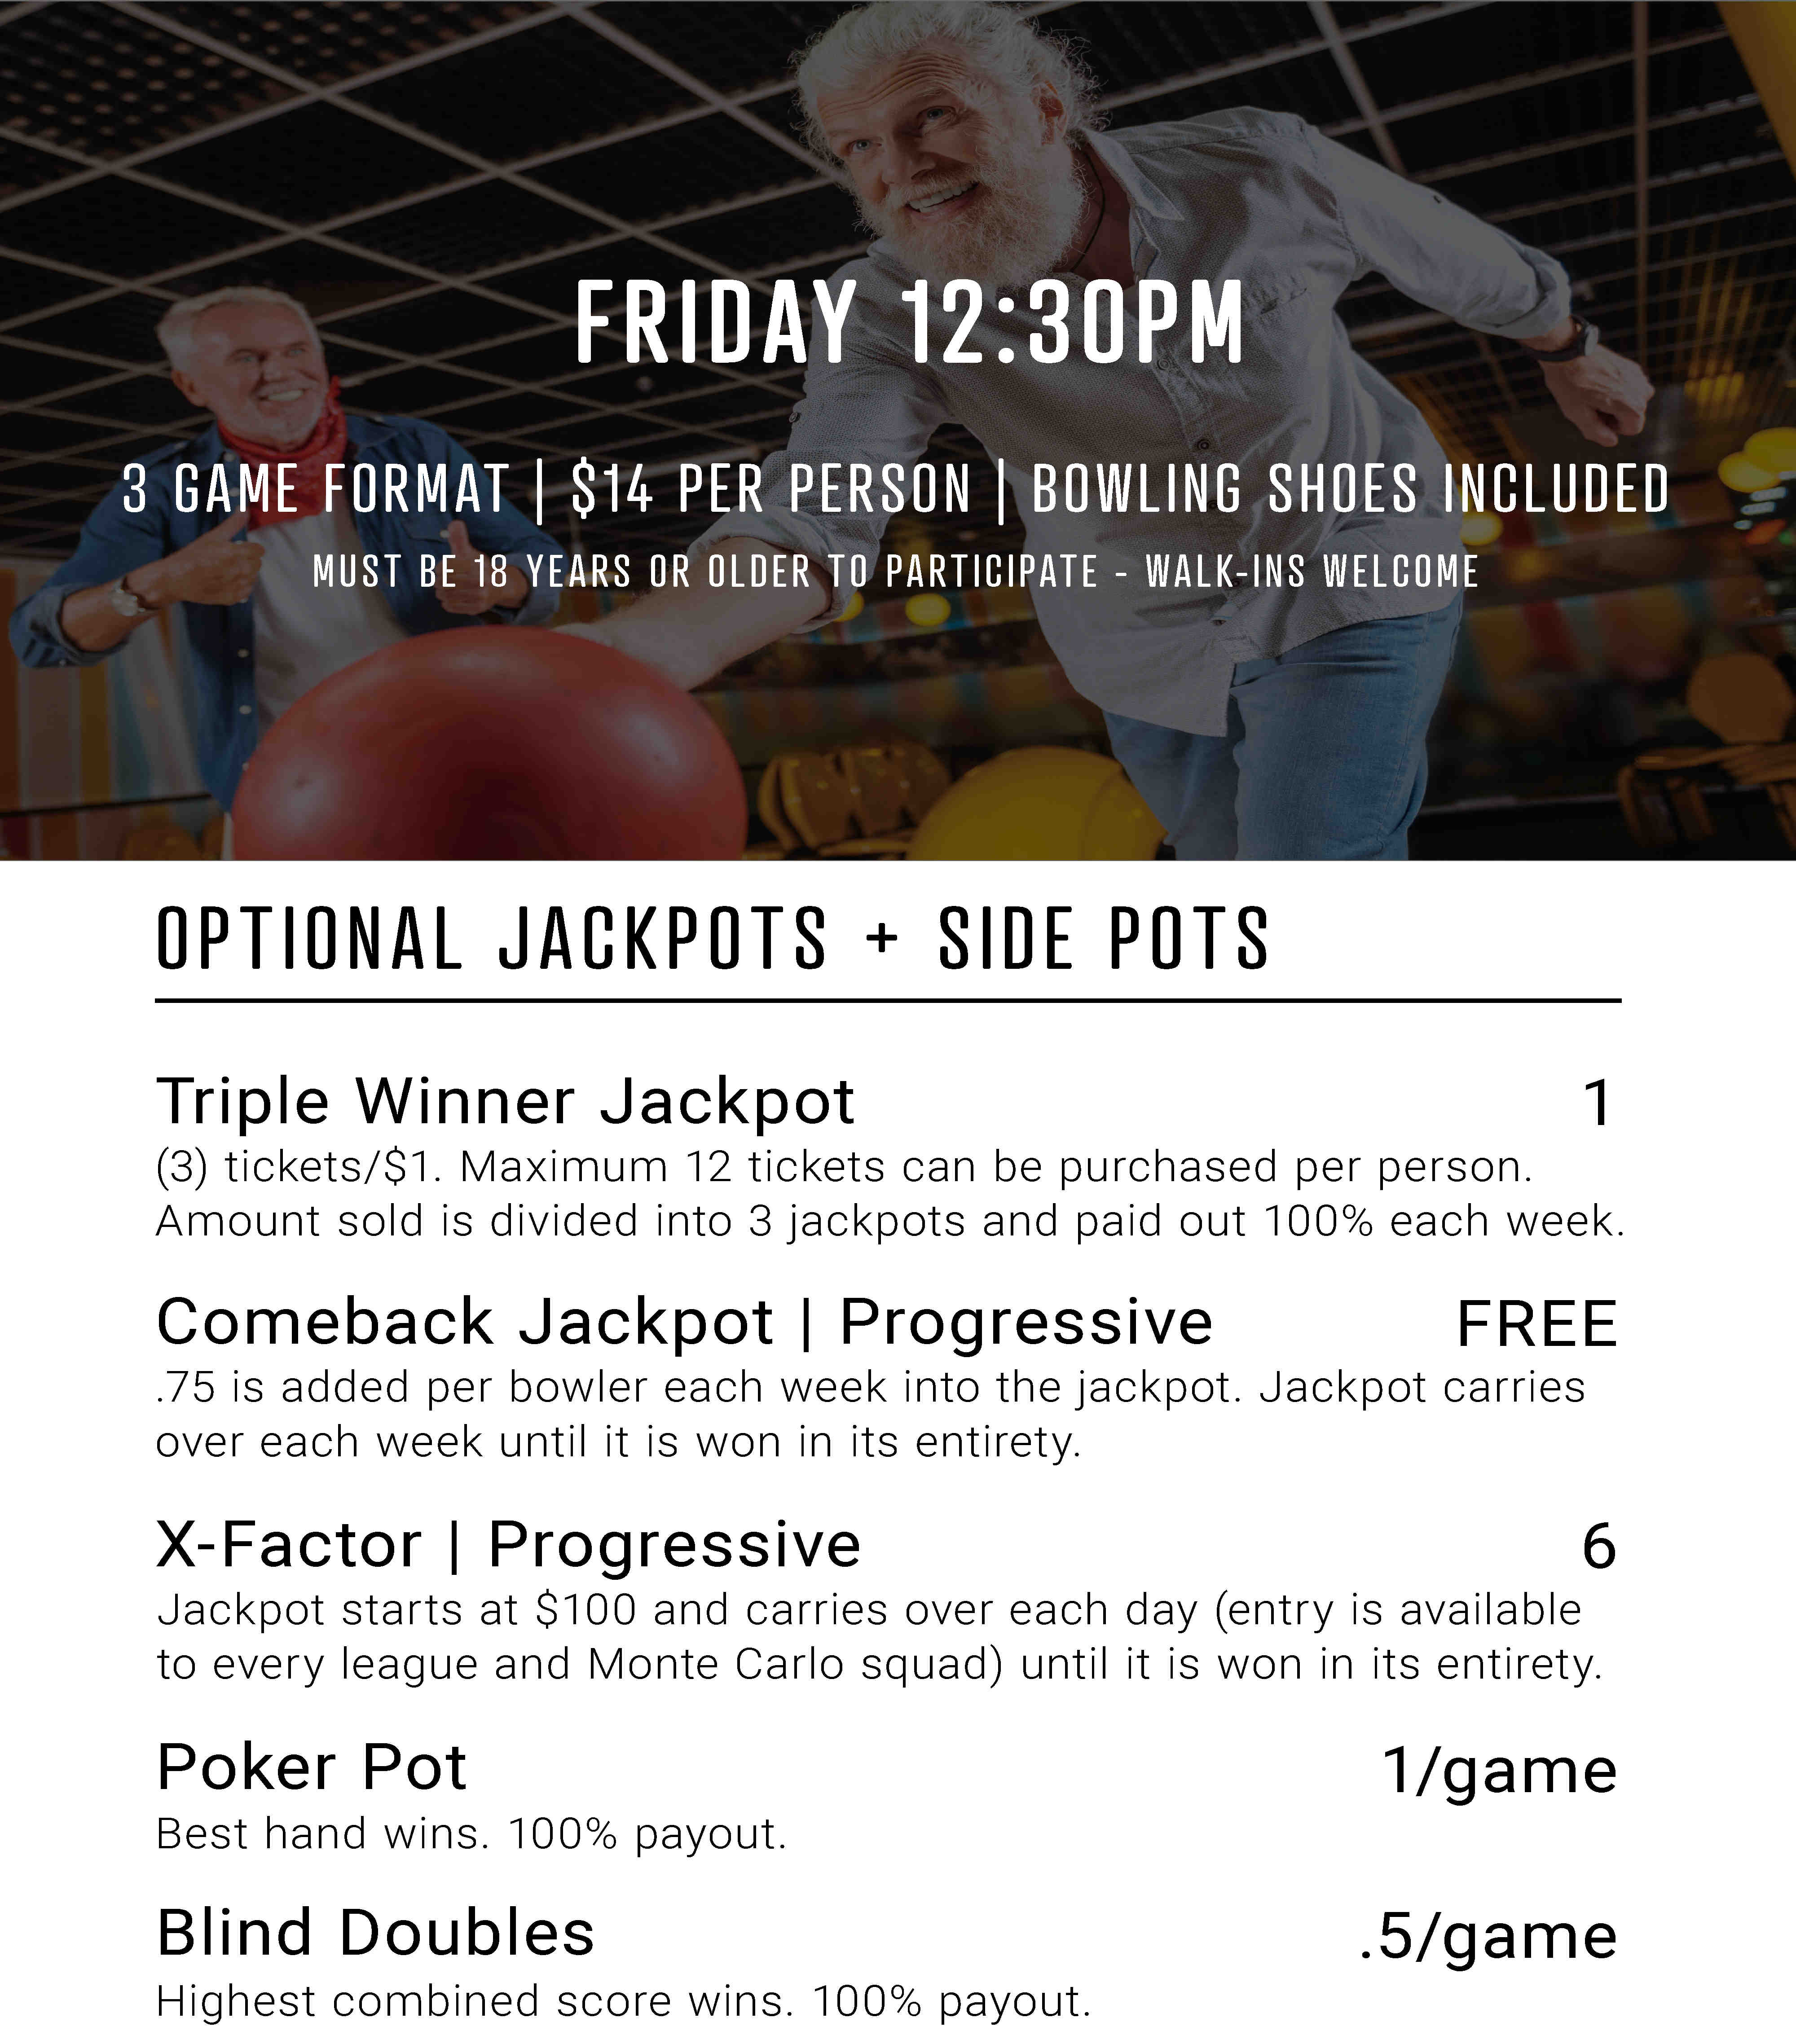 Friday afternoon monte carlo information